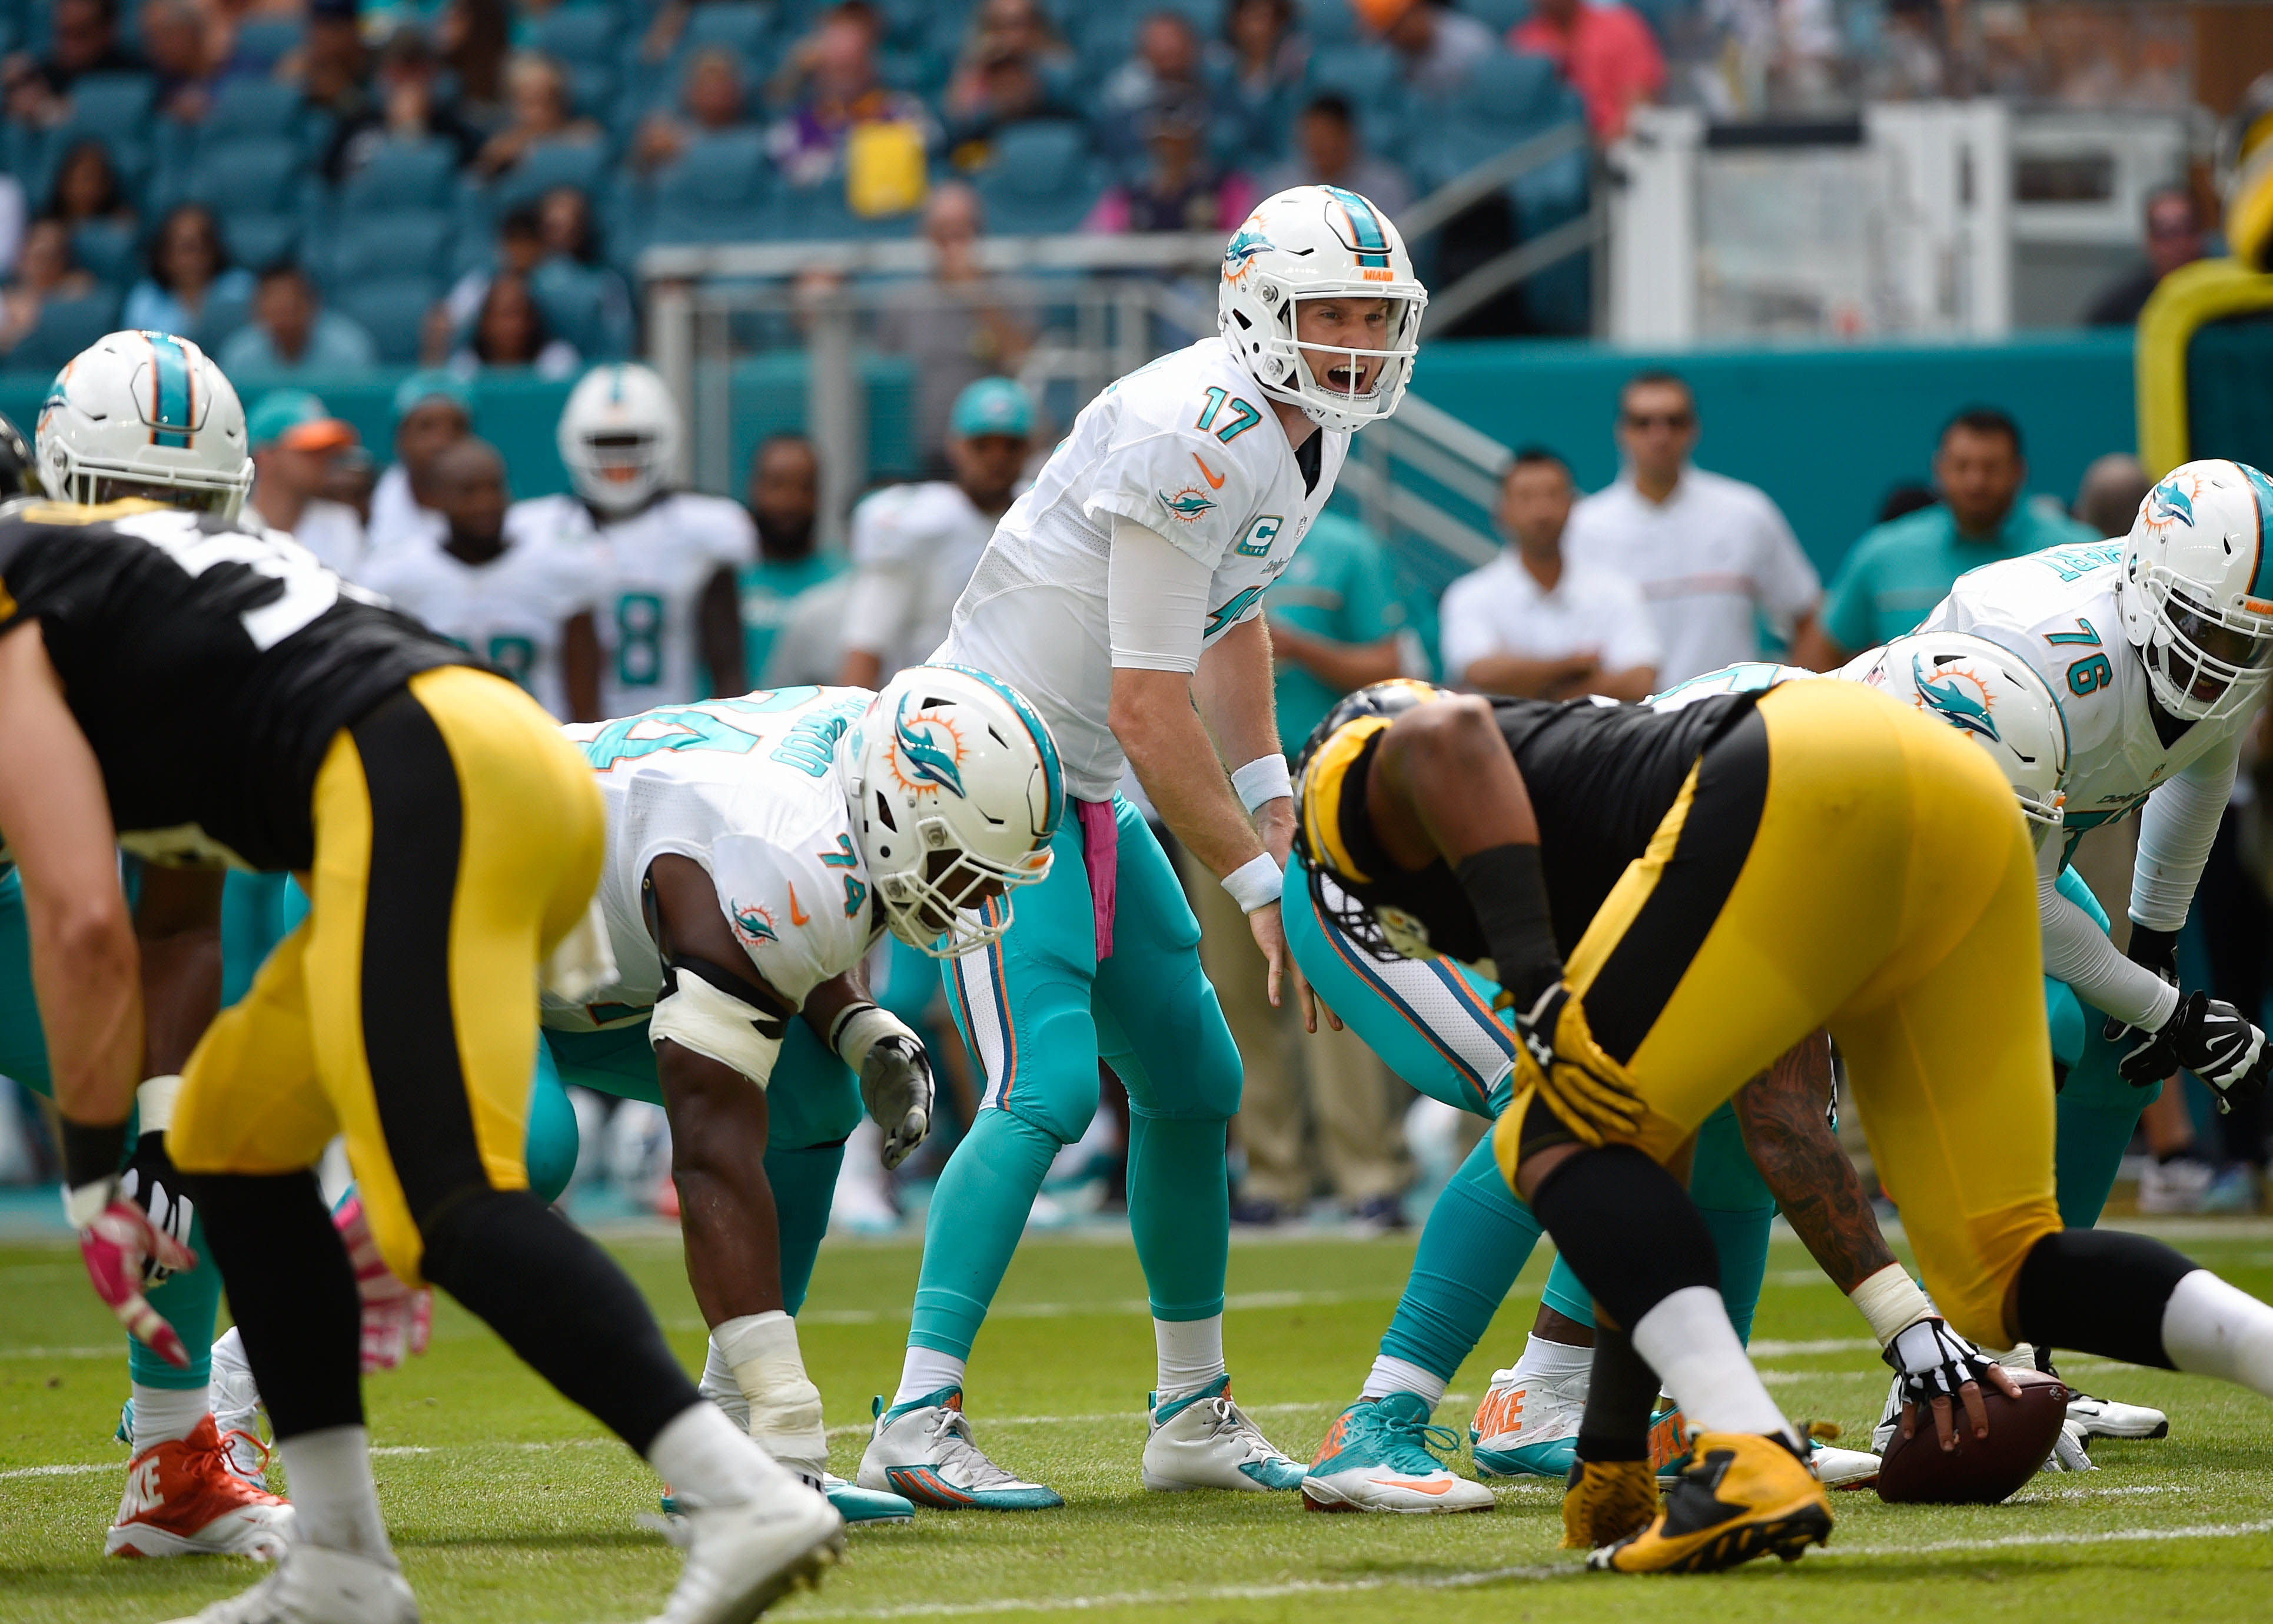 Oct 16, 2016; Miami Gardens, FL, USA; Miami Dolphins quarterback Ryan Tannehill (17) yells out fro the line of scrimmage during the first inning against the Pittsburgh Steelers at Hard Rock Stadium. Mandatory Credit: Steve Mitchell-USA TODAY Sports